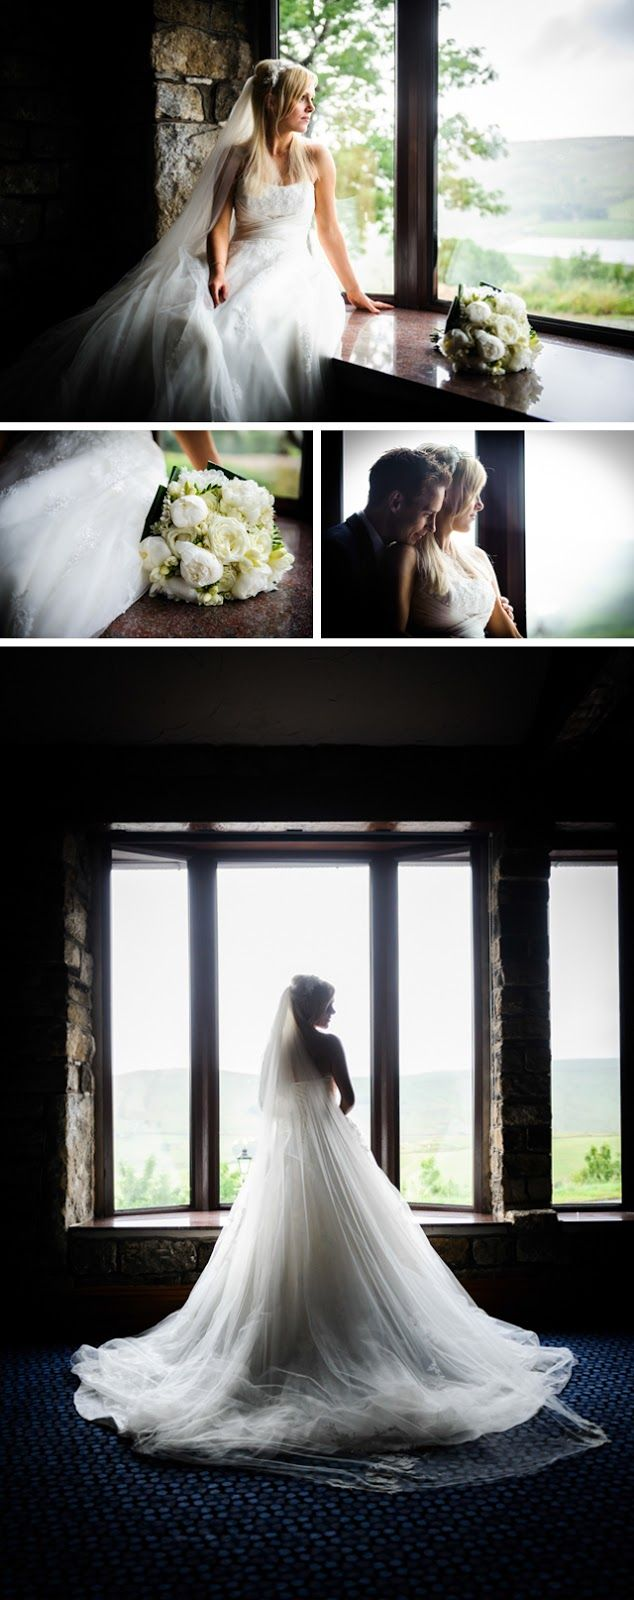 Pixies in the Cellar: Rainy wedding at The Saddleworth Hotel, Delph, West Riding of Yorkshire